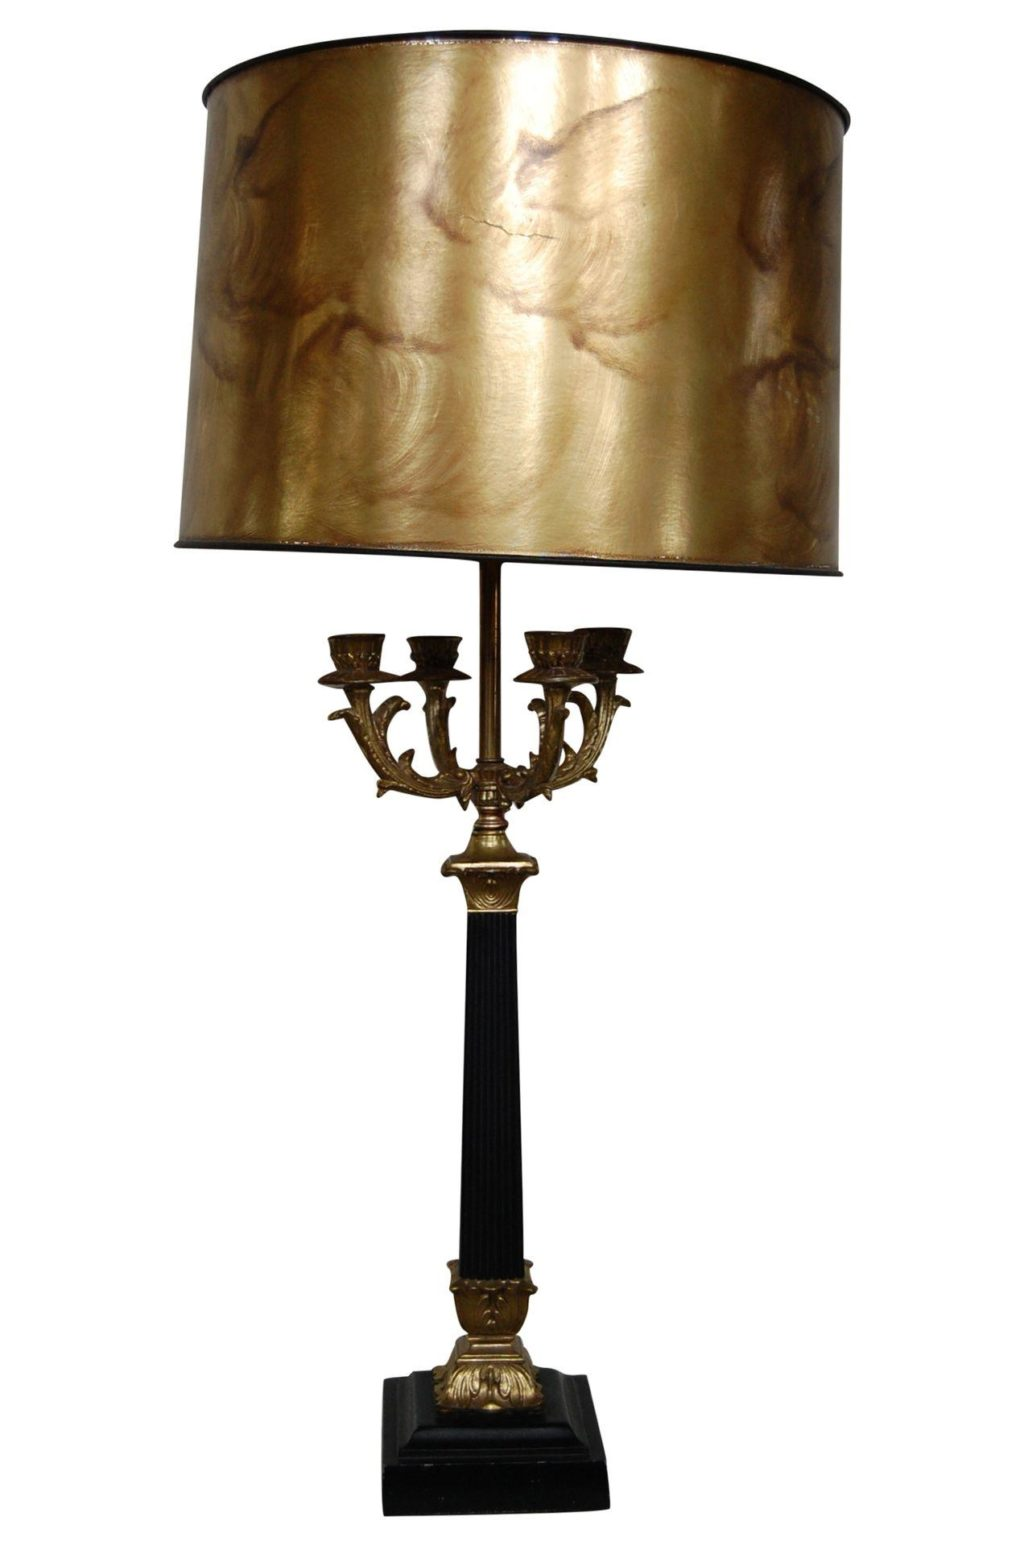 Tall Black Amp Gold Neoclassical Candelabra Lamp The Savoy